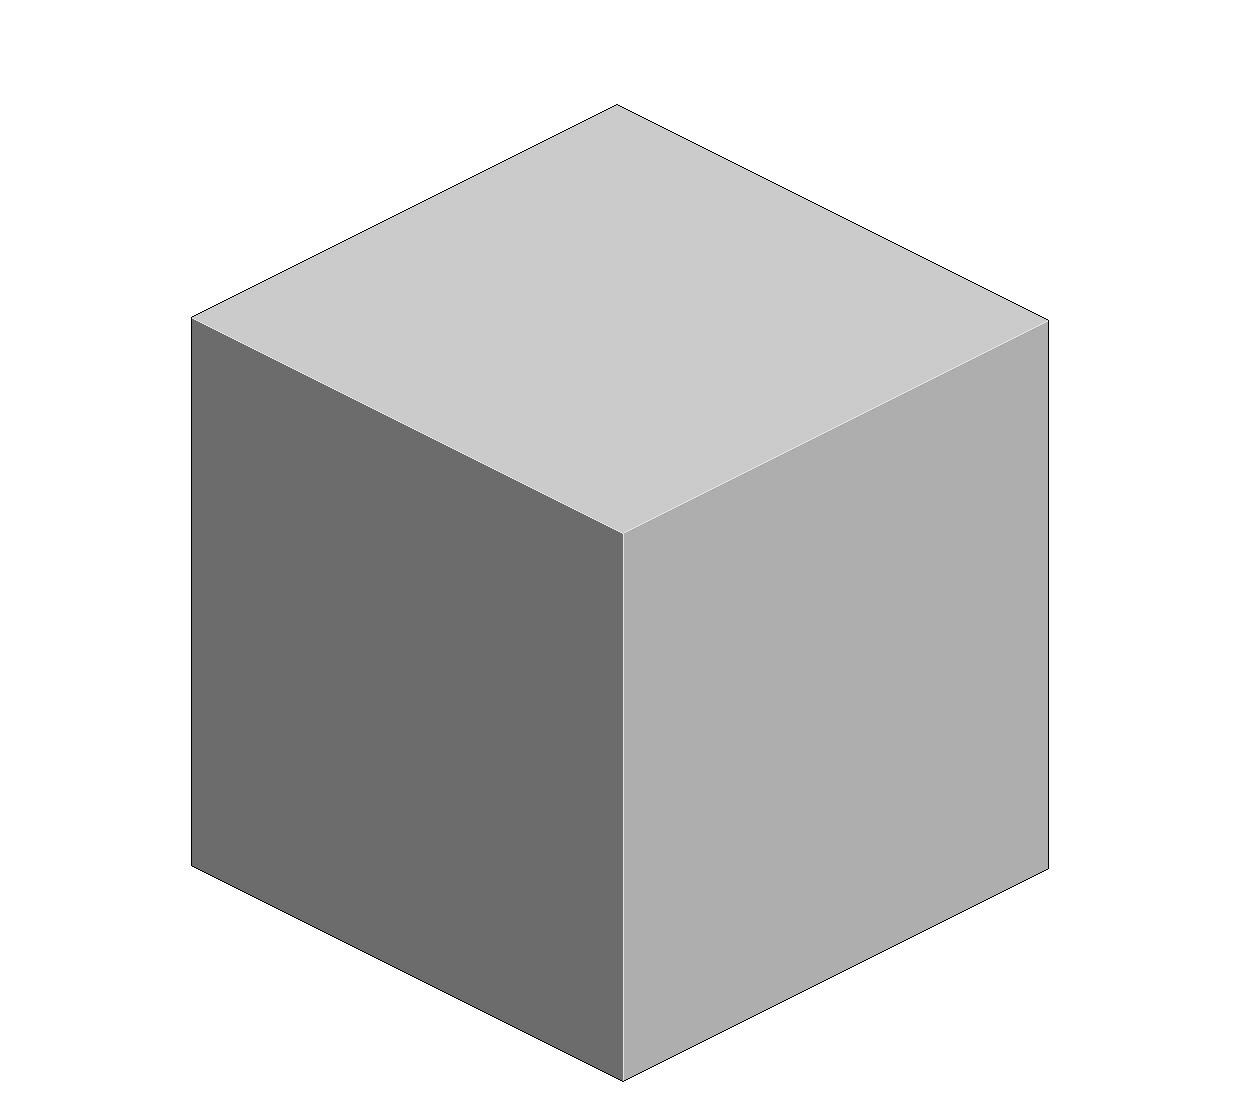 png cube